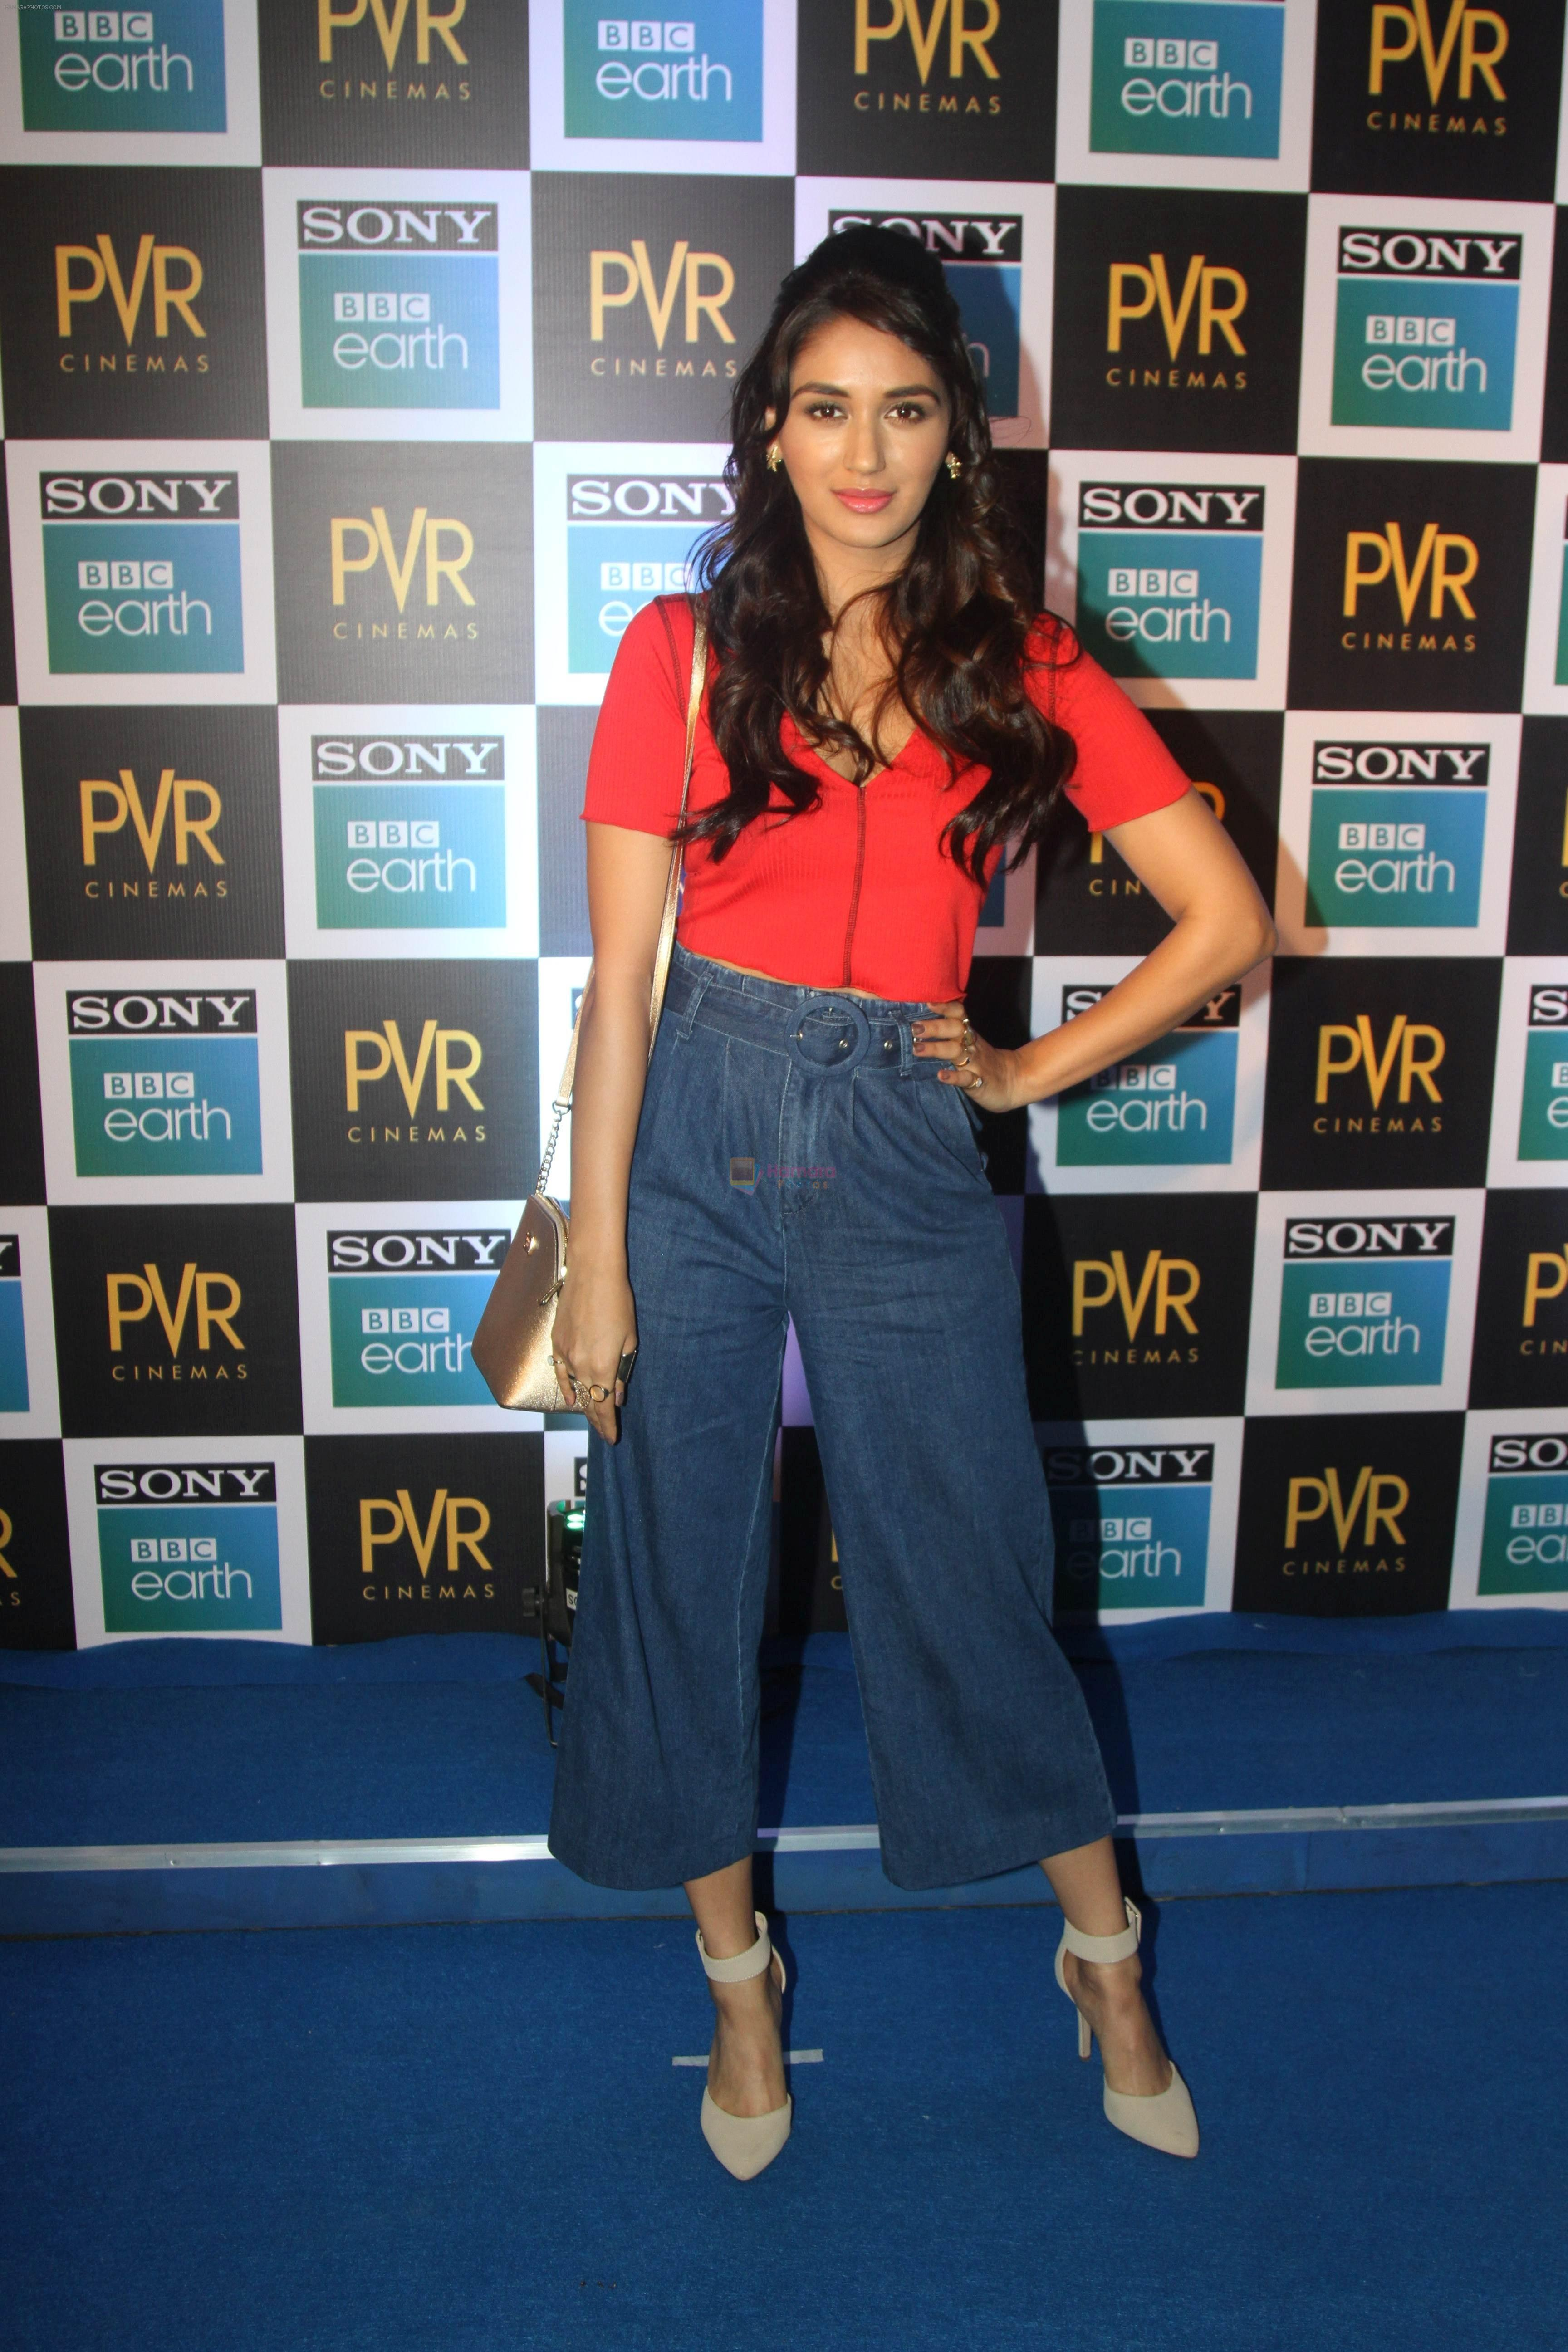 at the Screening of Sony BBC Earth's film Blue Planet 2 at pvr icon in andheri on 15th May 2018